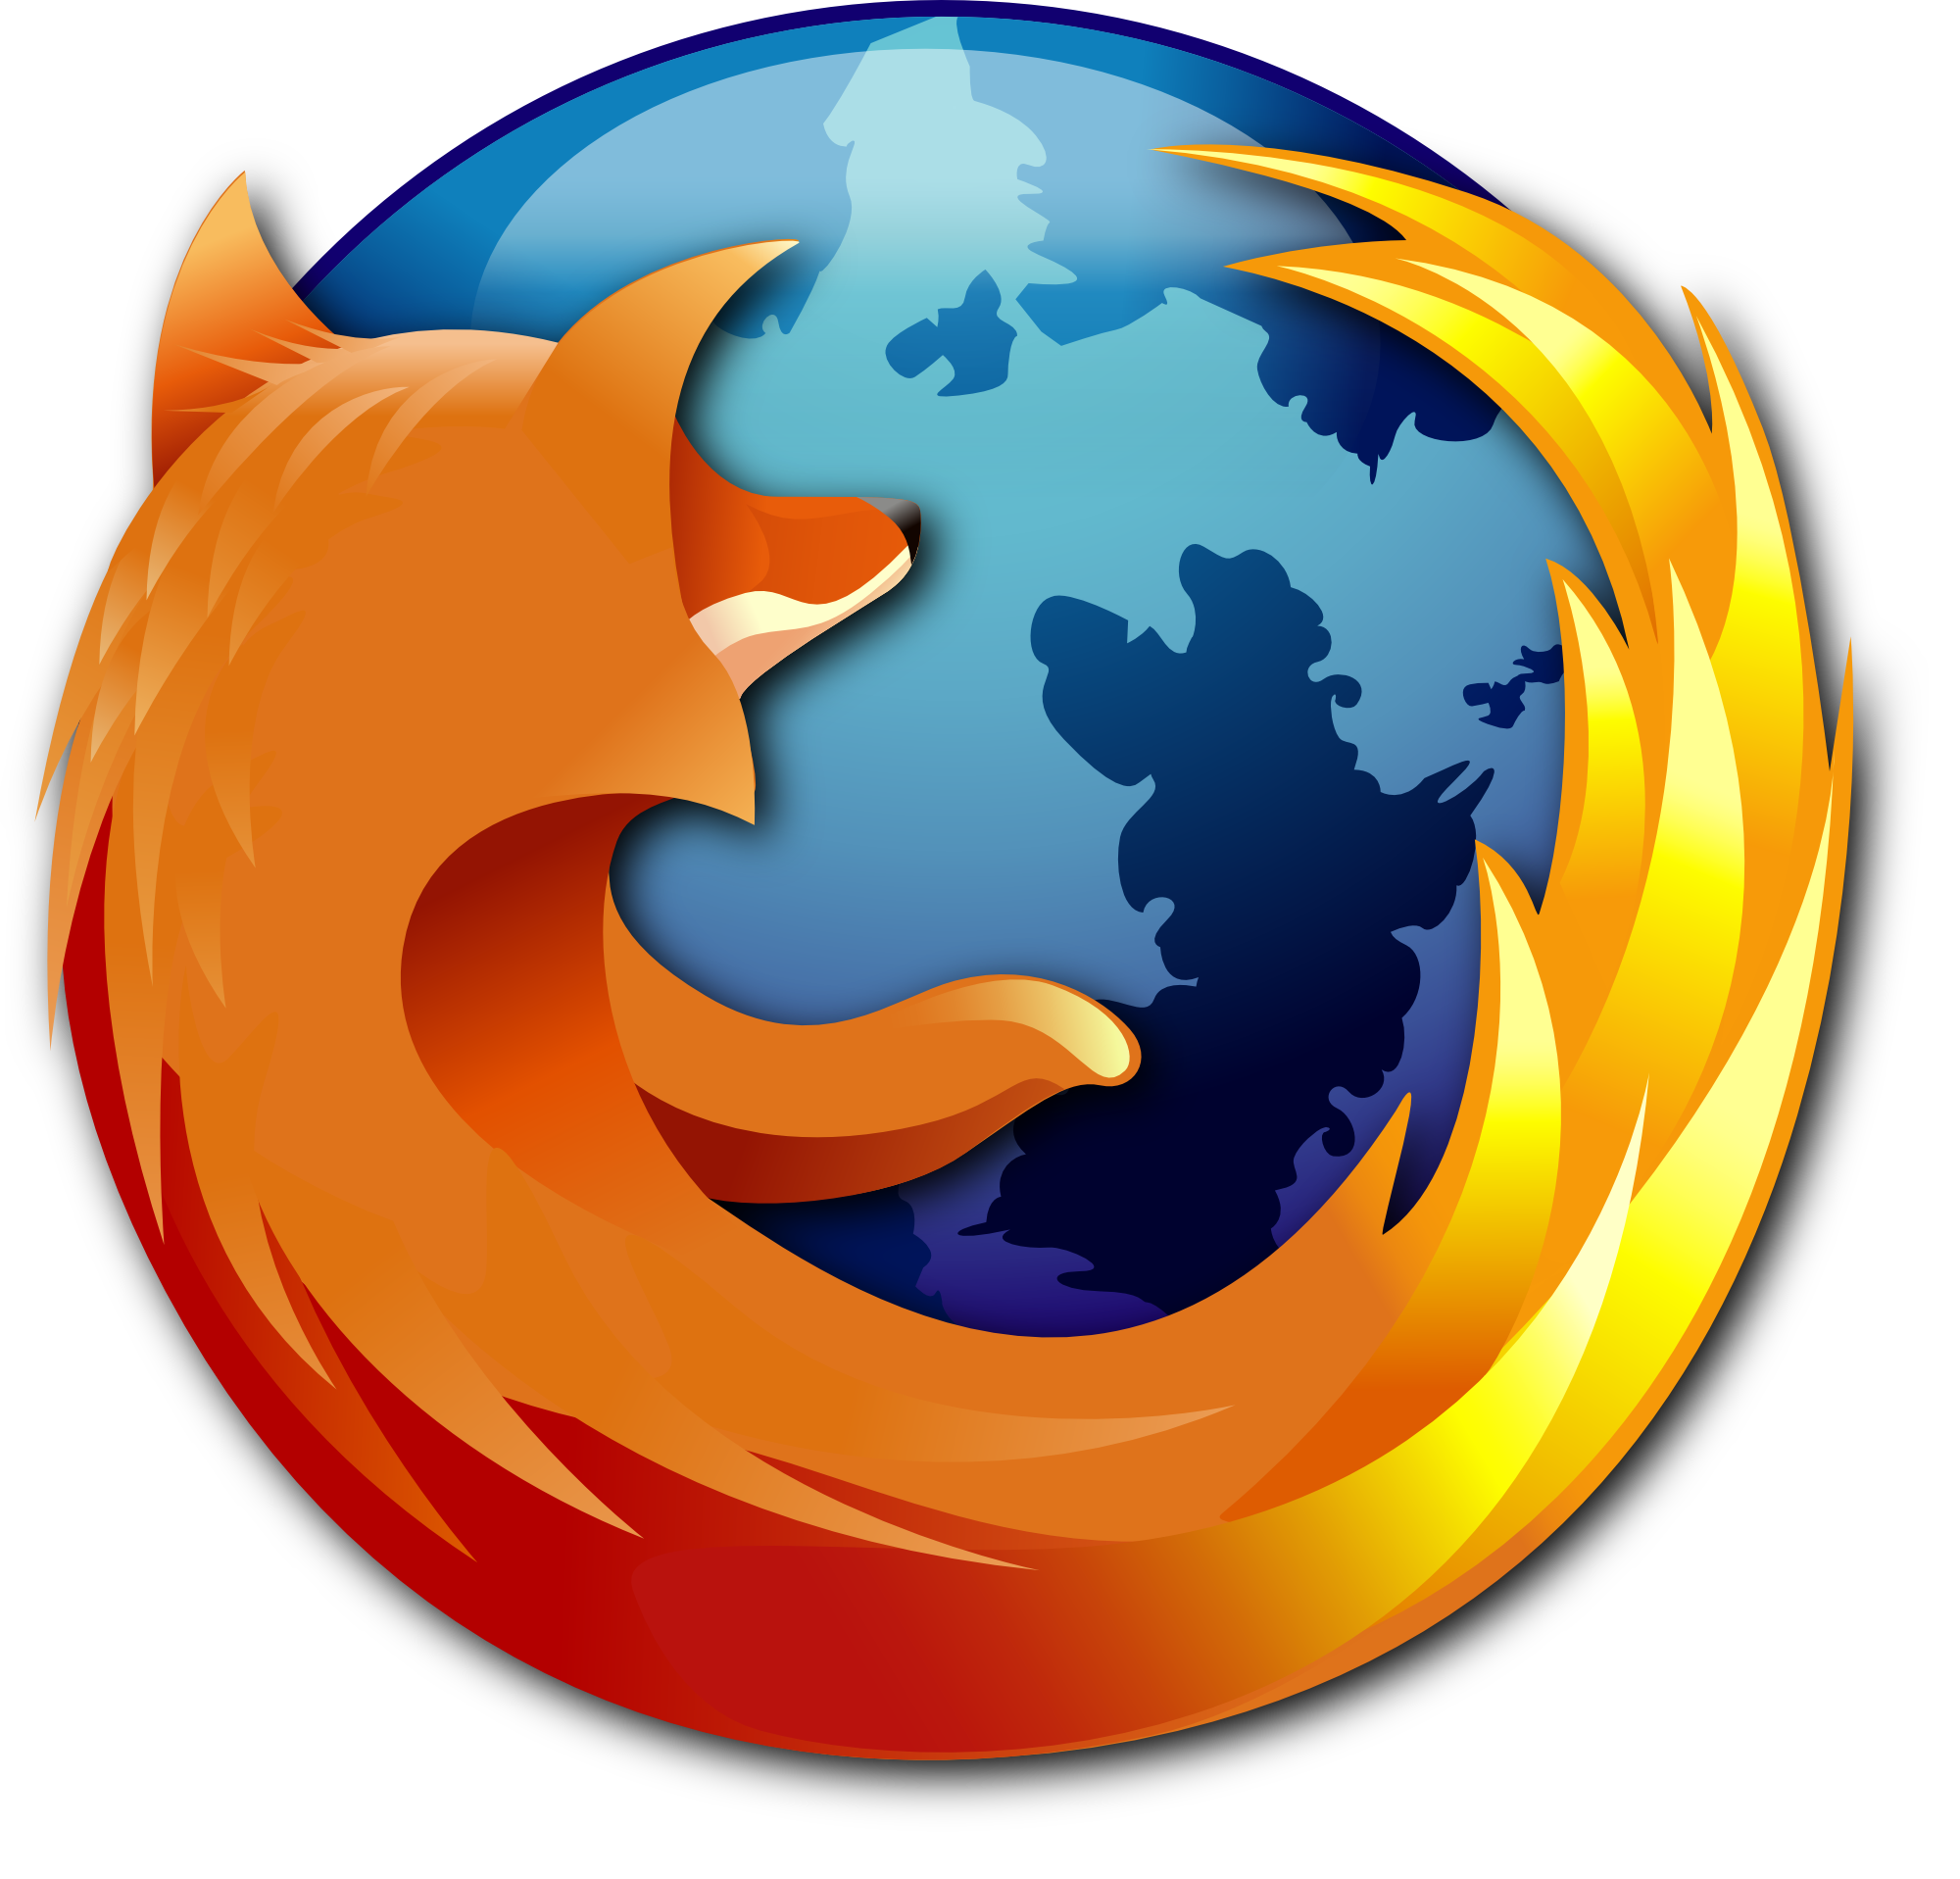 Download From Firefox Add-ons